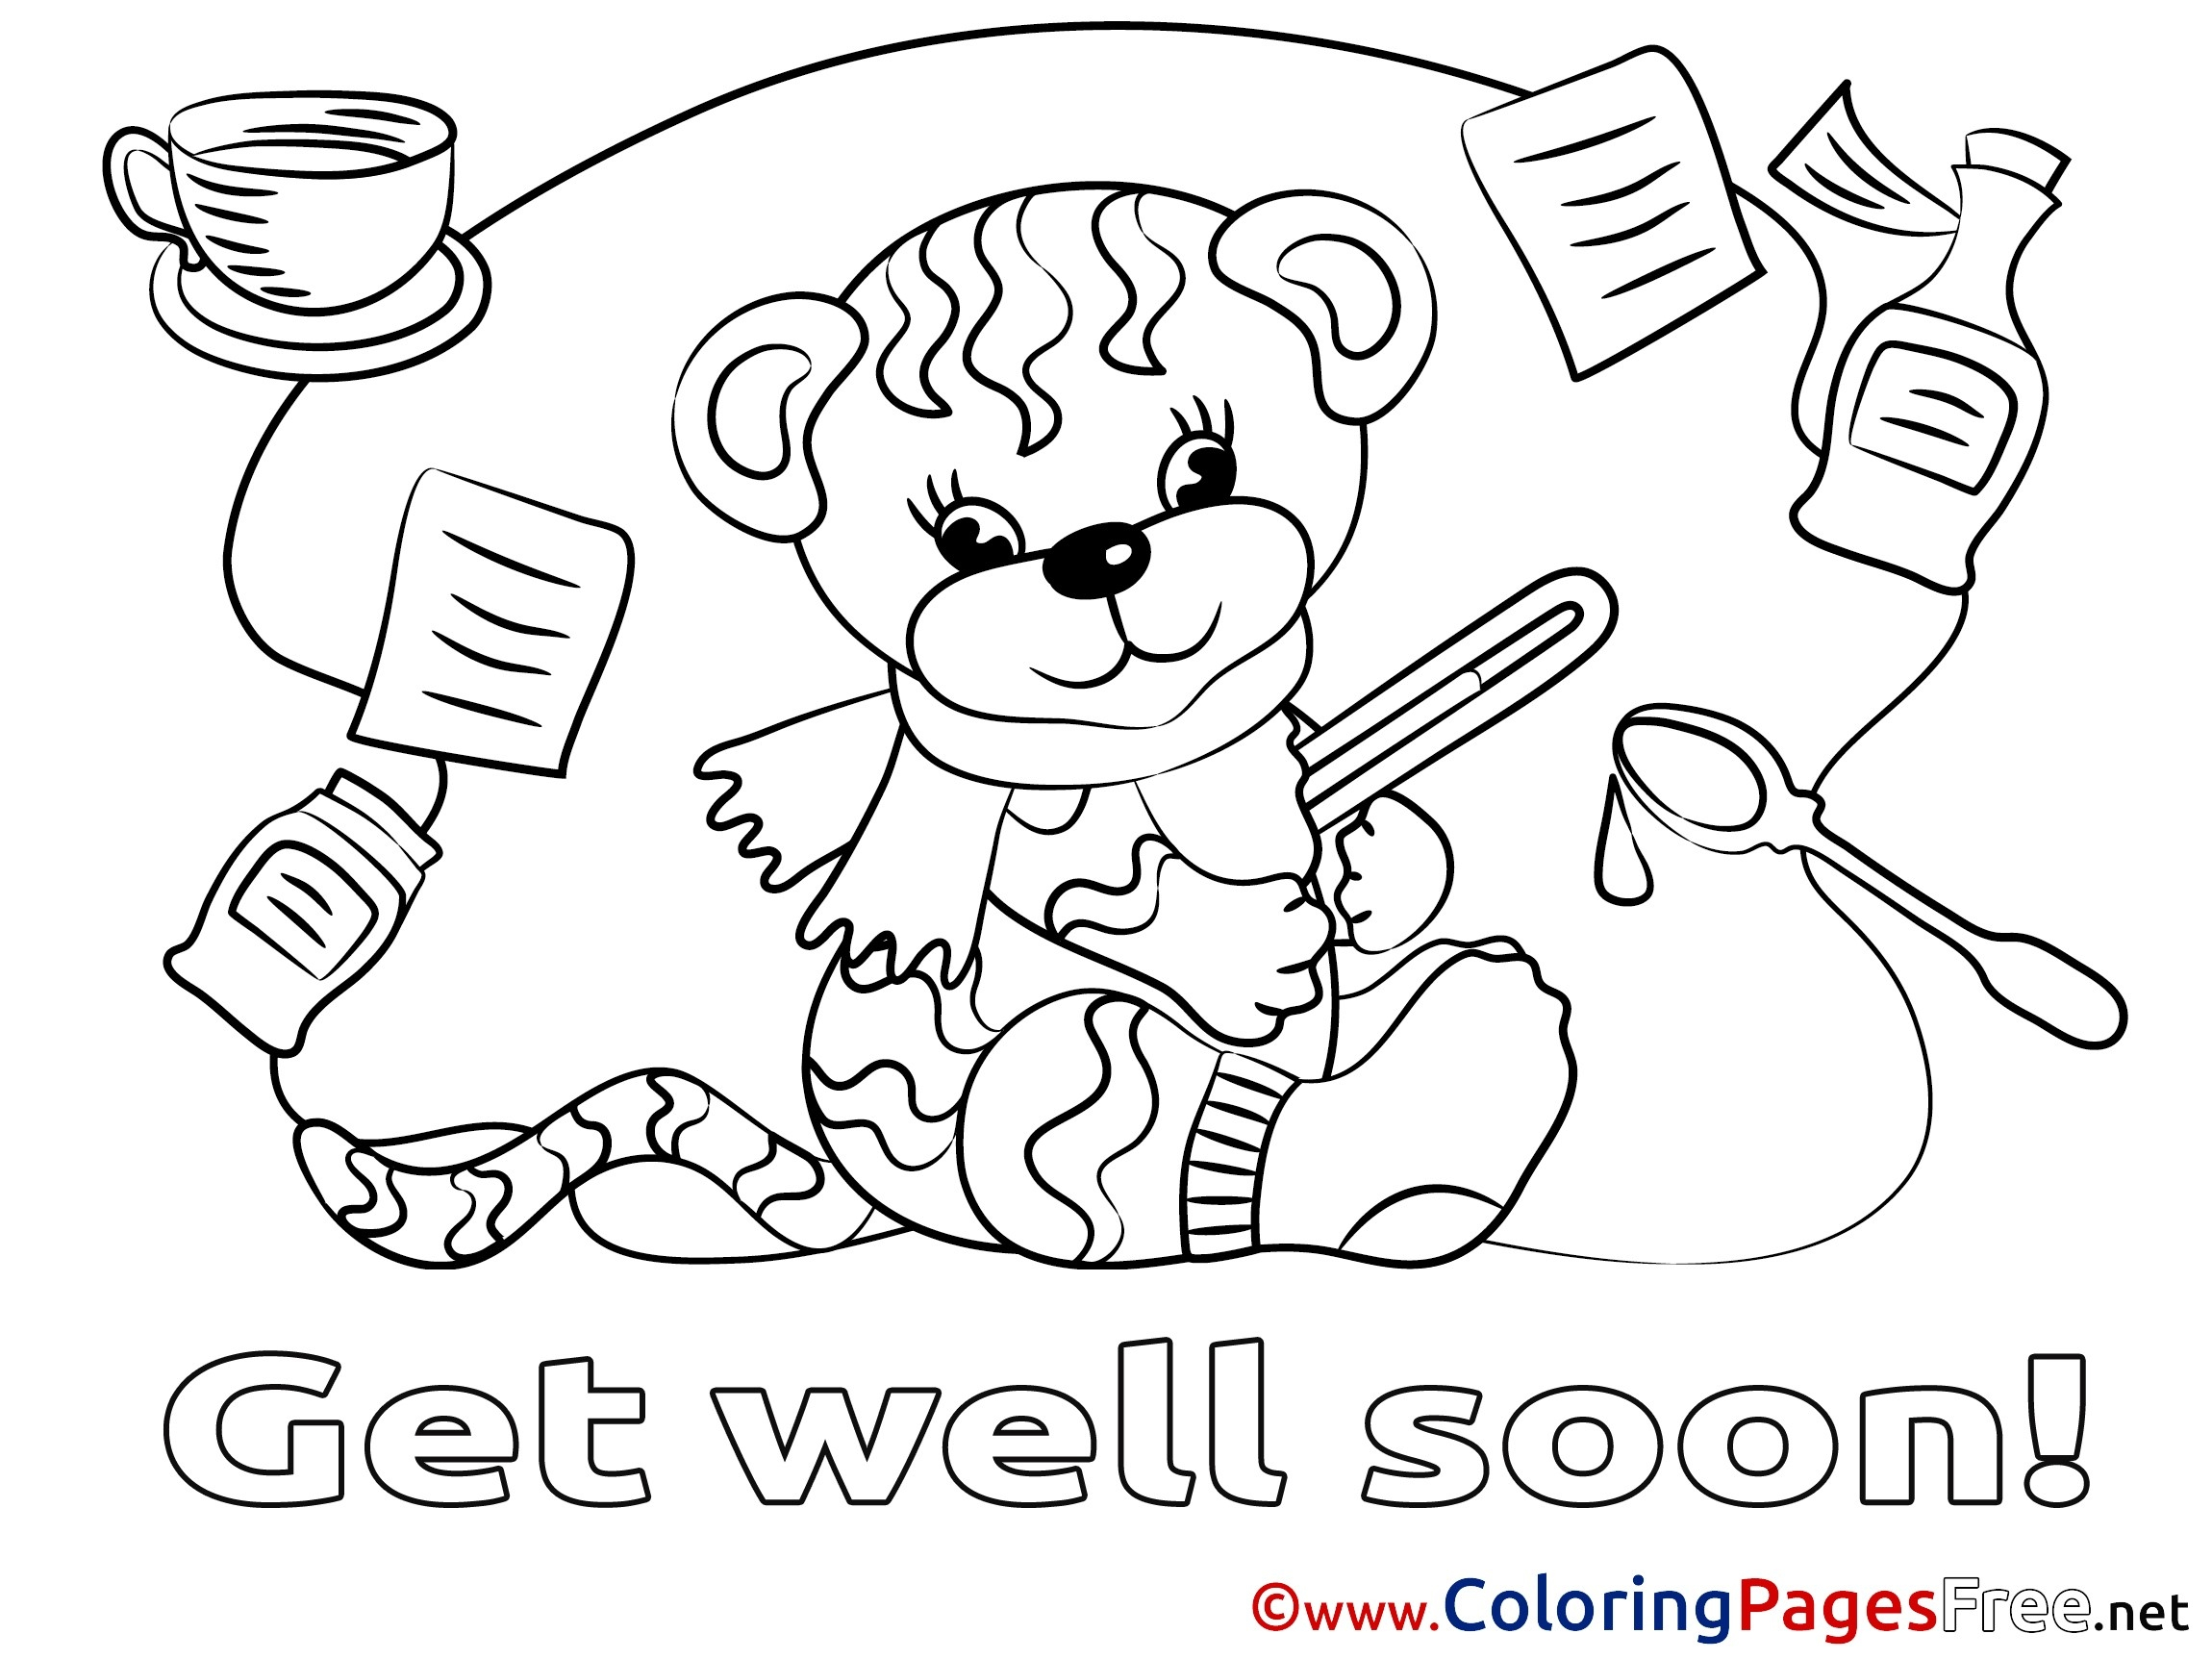 The Best Free Professional Coloring Page Images Download